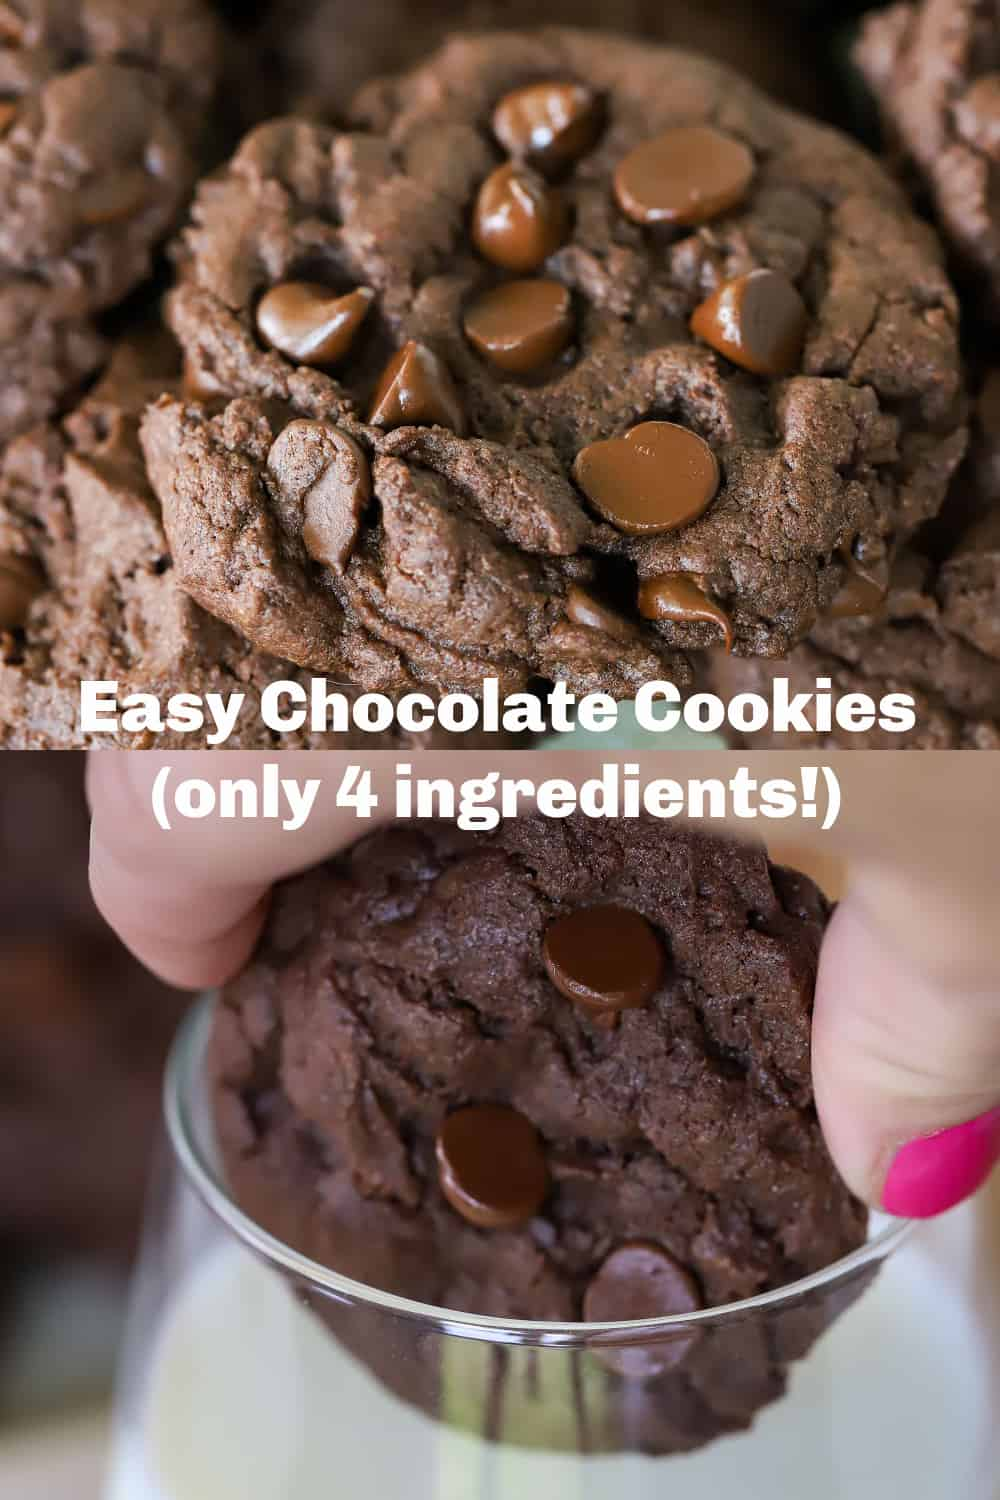 Need a chocolate fix but don't want to measure out ingredients? Try these 4 ingredient Easy Chocolate Cookies. So quick to make, even my kids can make them! And they are soooo good! via @jennikolaus